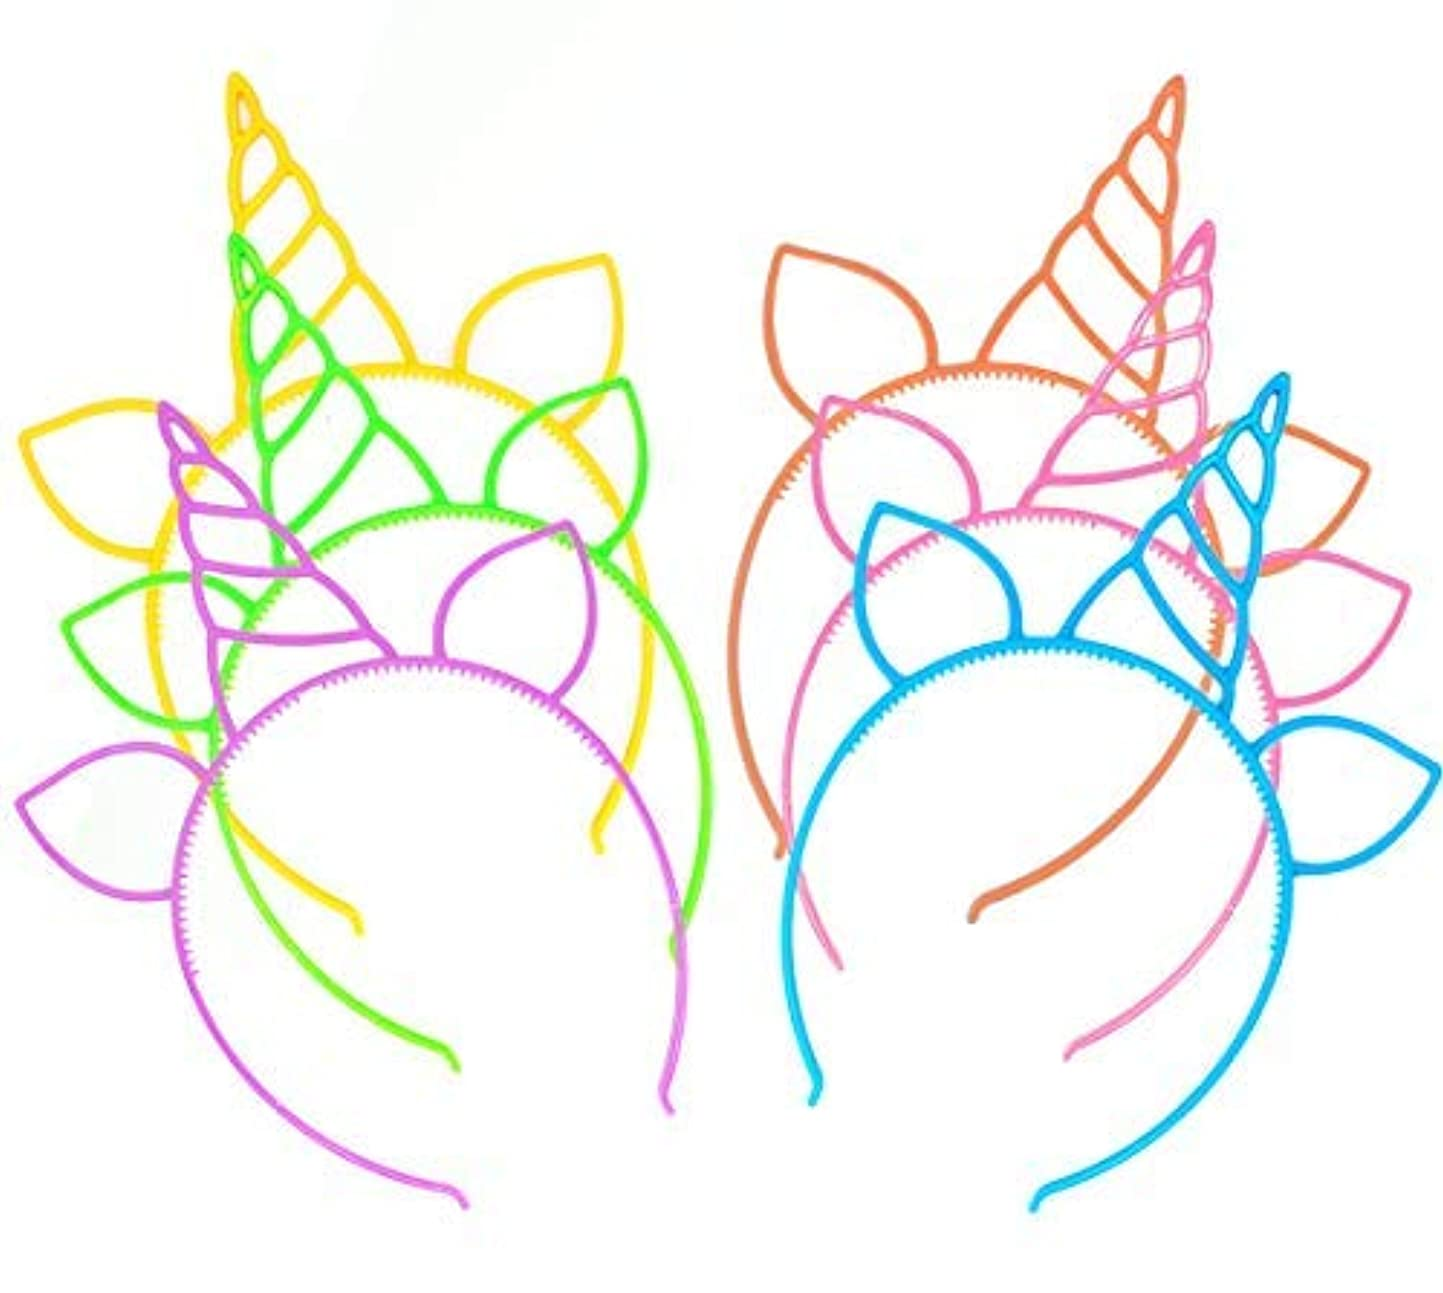 砲兵溶かす葬儀12 Pcs Unicorn Headbands Theme Birthday Party Favor Supplies Gift Costume [並行輸入品]